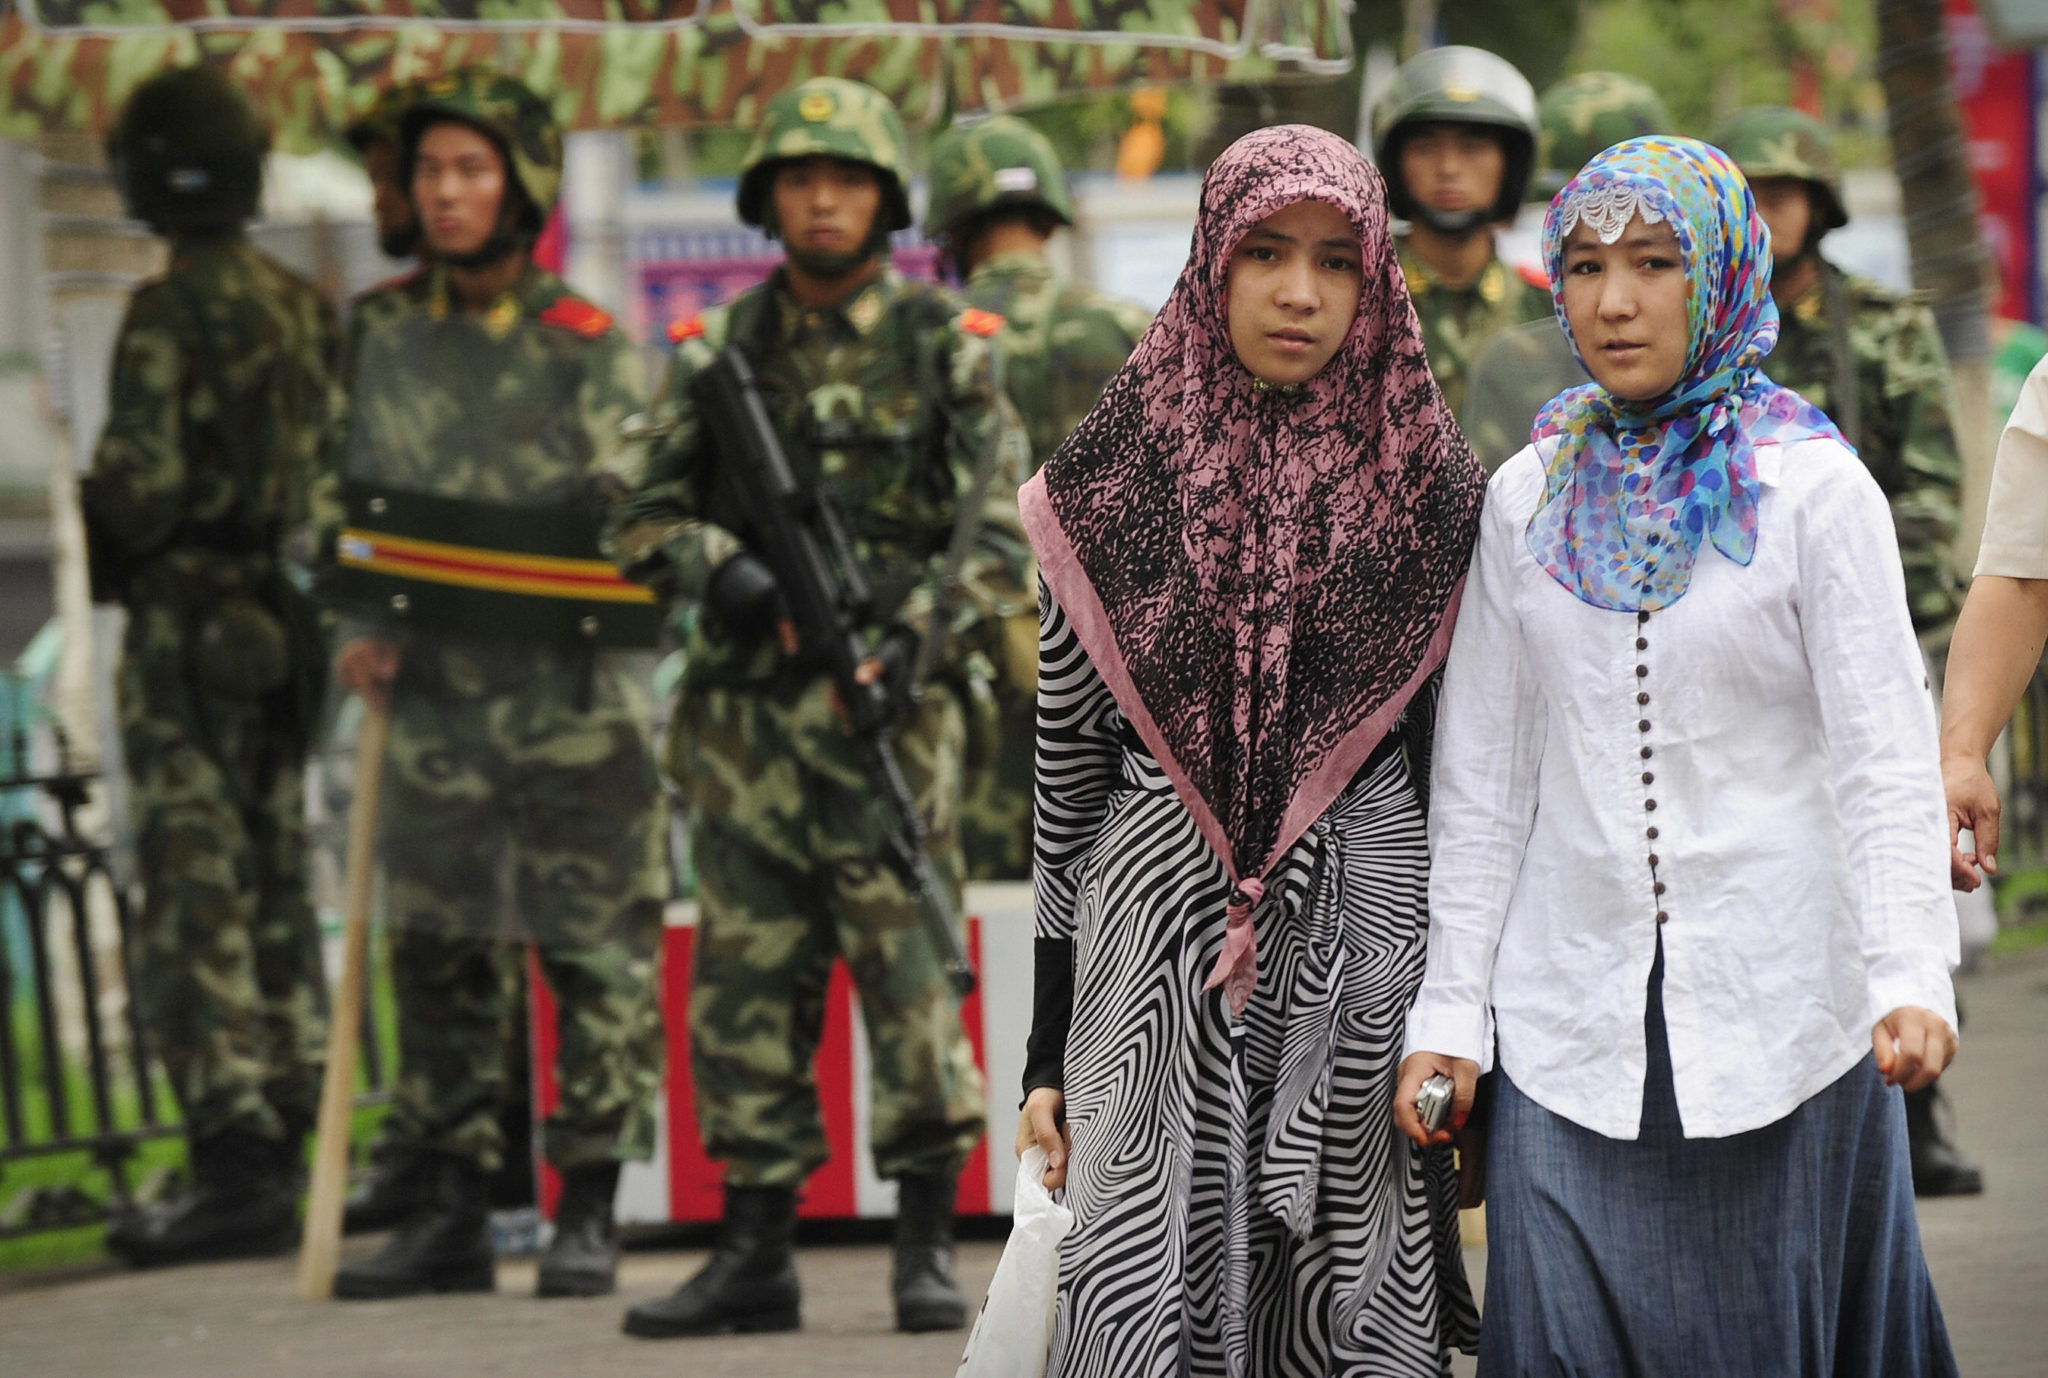 Two ethnic Uighur women pass Chinese paramilitary policemen standing guard outside the Grand Bazaar in the Uighur district of the city of Urumqi in China's Xinjiang region on July 14, 2009. (PETER PARKS/AFP via Getty Images)